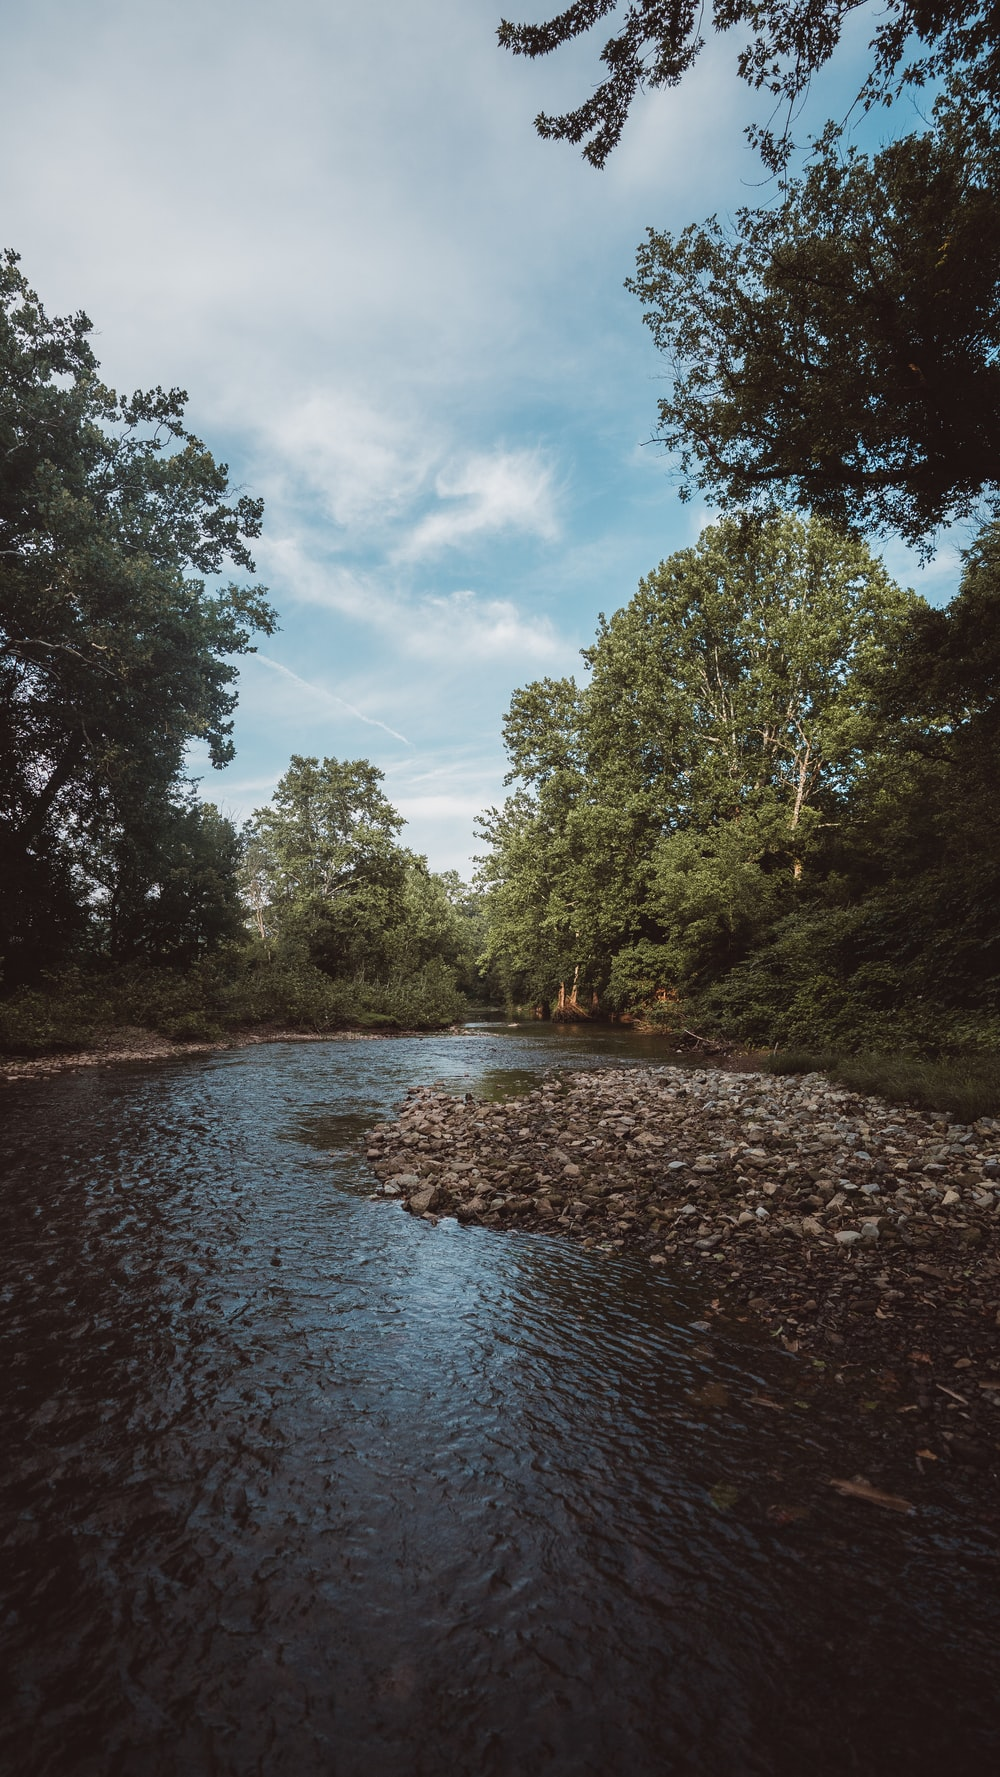 view photography of river and trees